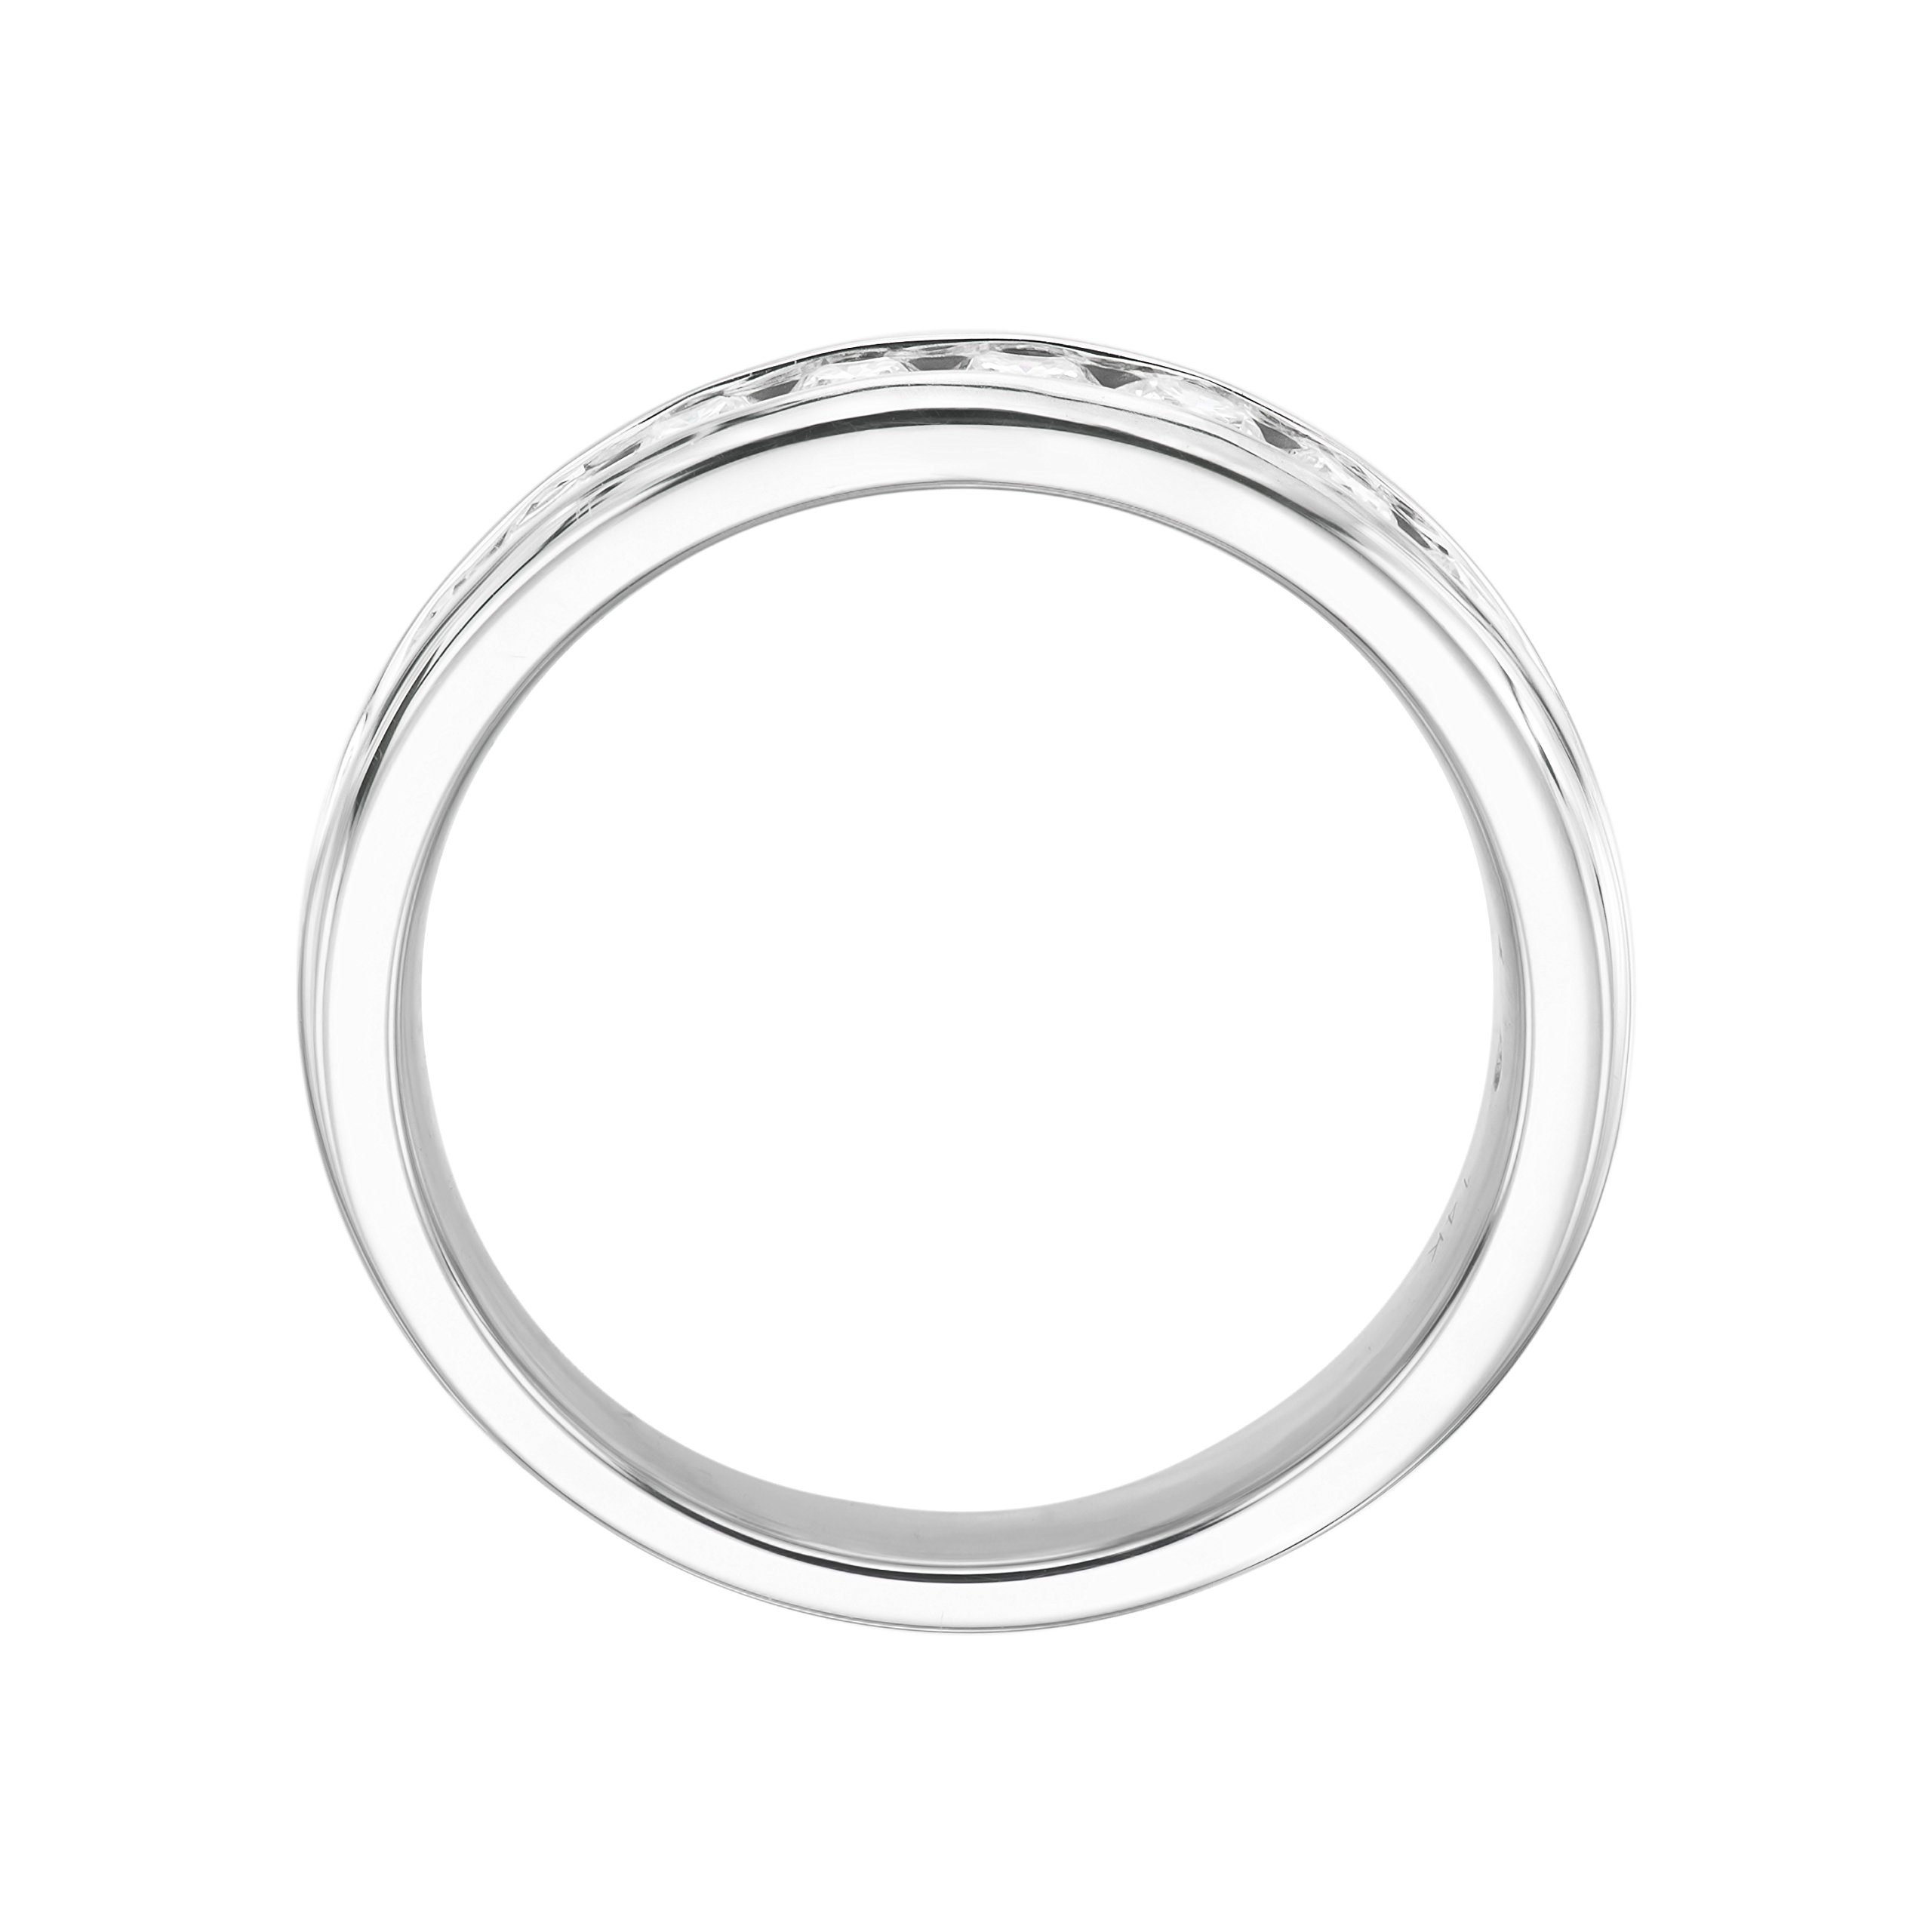 14KT White Gold 0.5ct G-I SI1/SI2 Channel Machine Set Wedding Ring by Uncle Sam's Collection (Image #2)